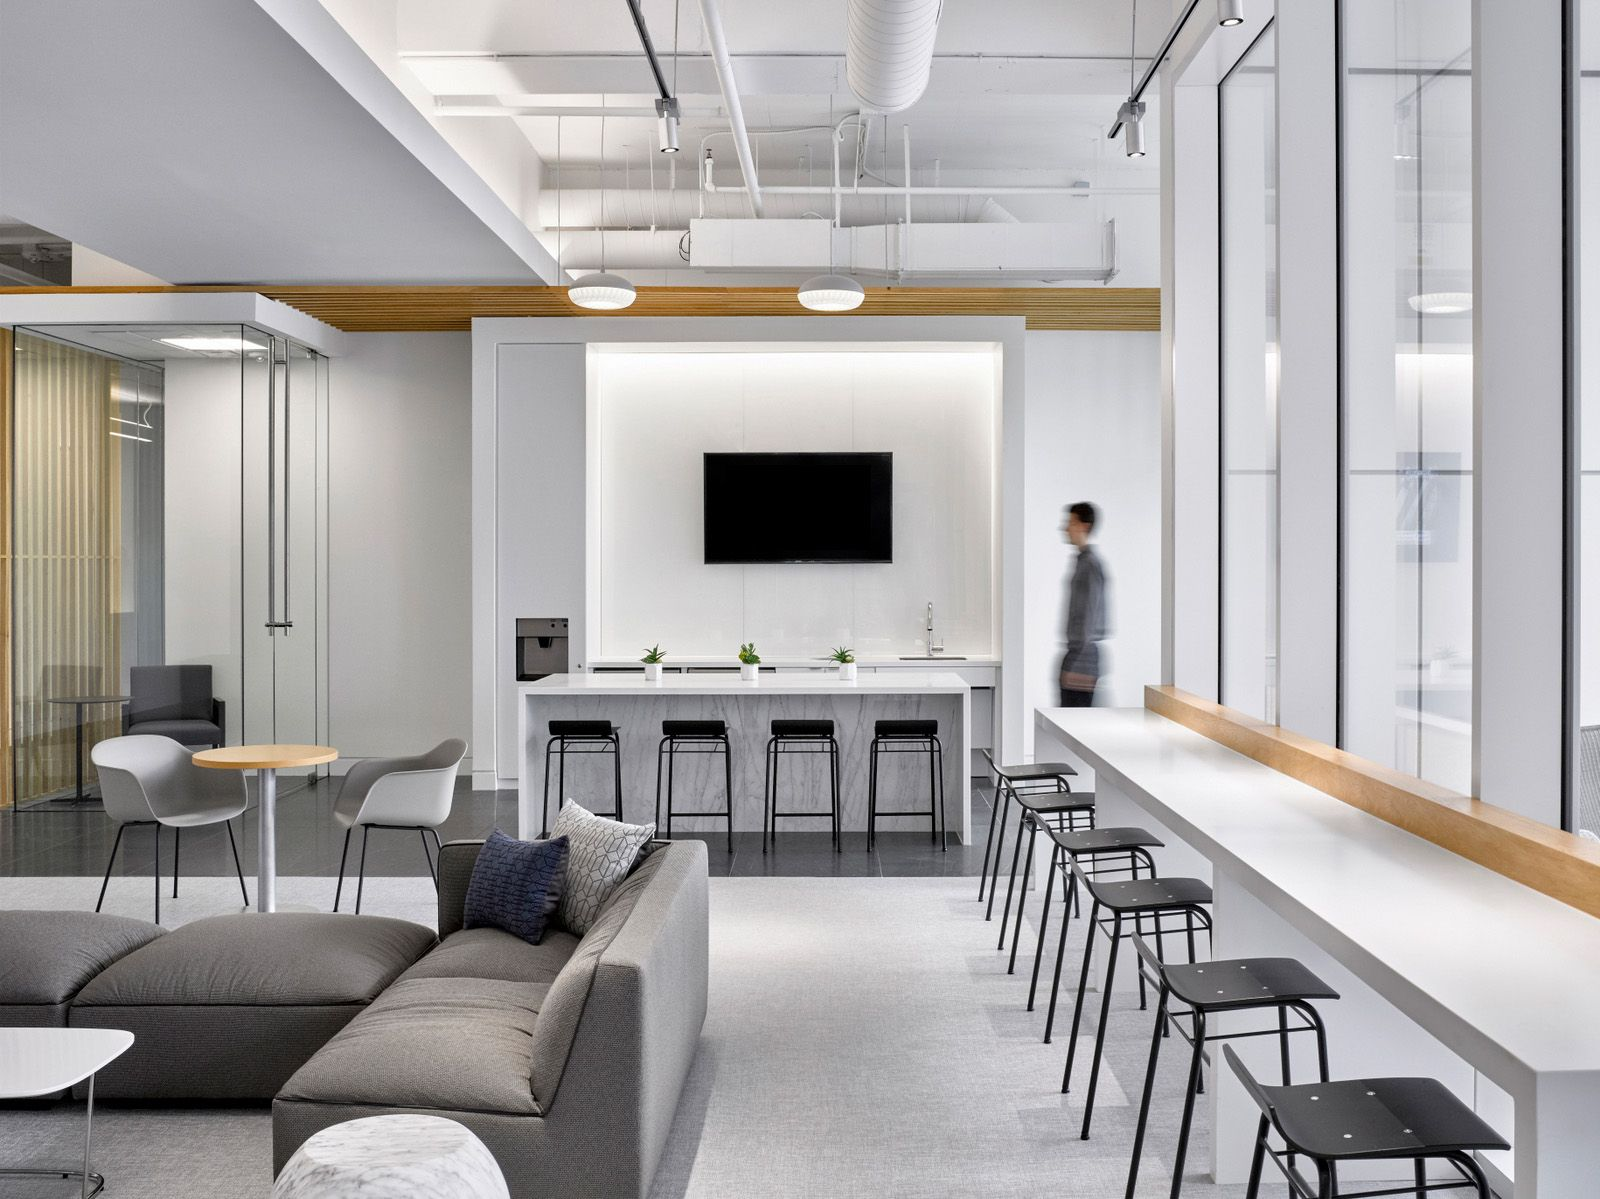 One Legacy West S Communal Space And Lobby Dallas Office Snapshots Office Interior Design Modern Office Space Interior Design School